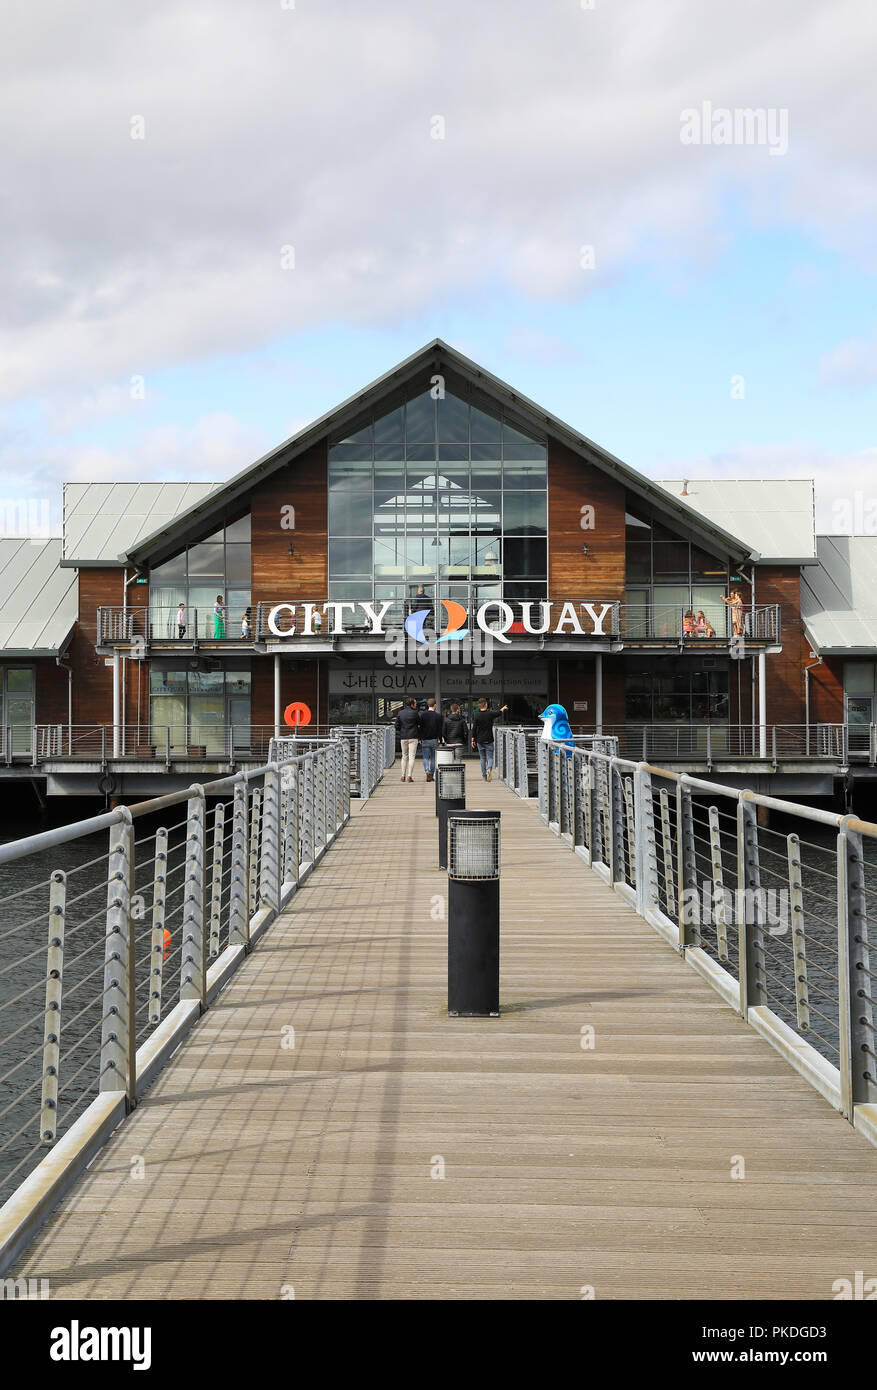 The City Quay redevelopment, on Victoria Dock, in Dundee, on Tayside, in Scotland, UK - Stock Image